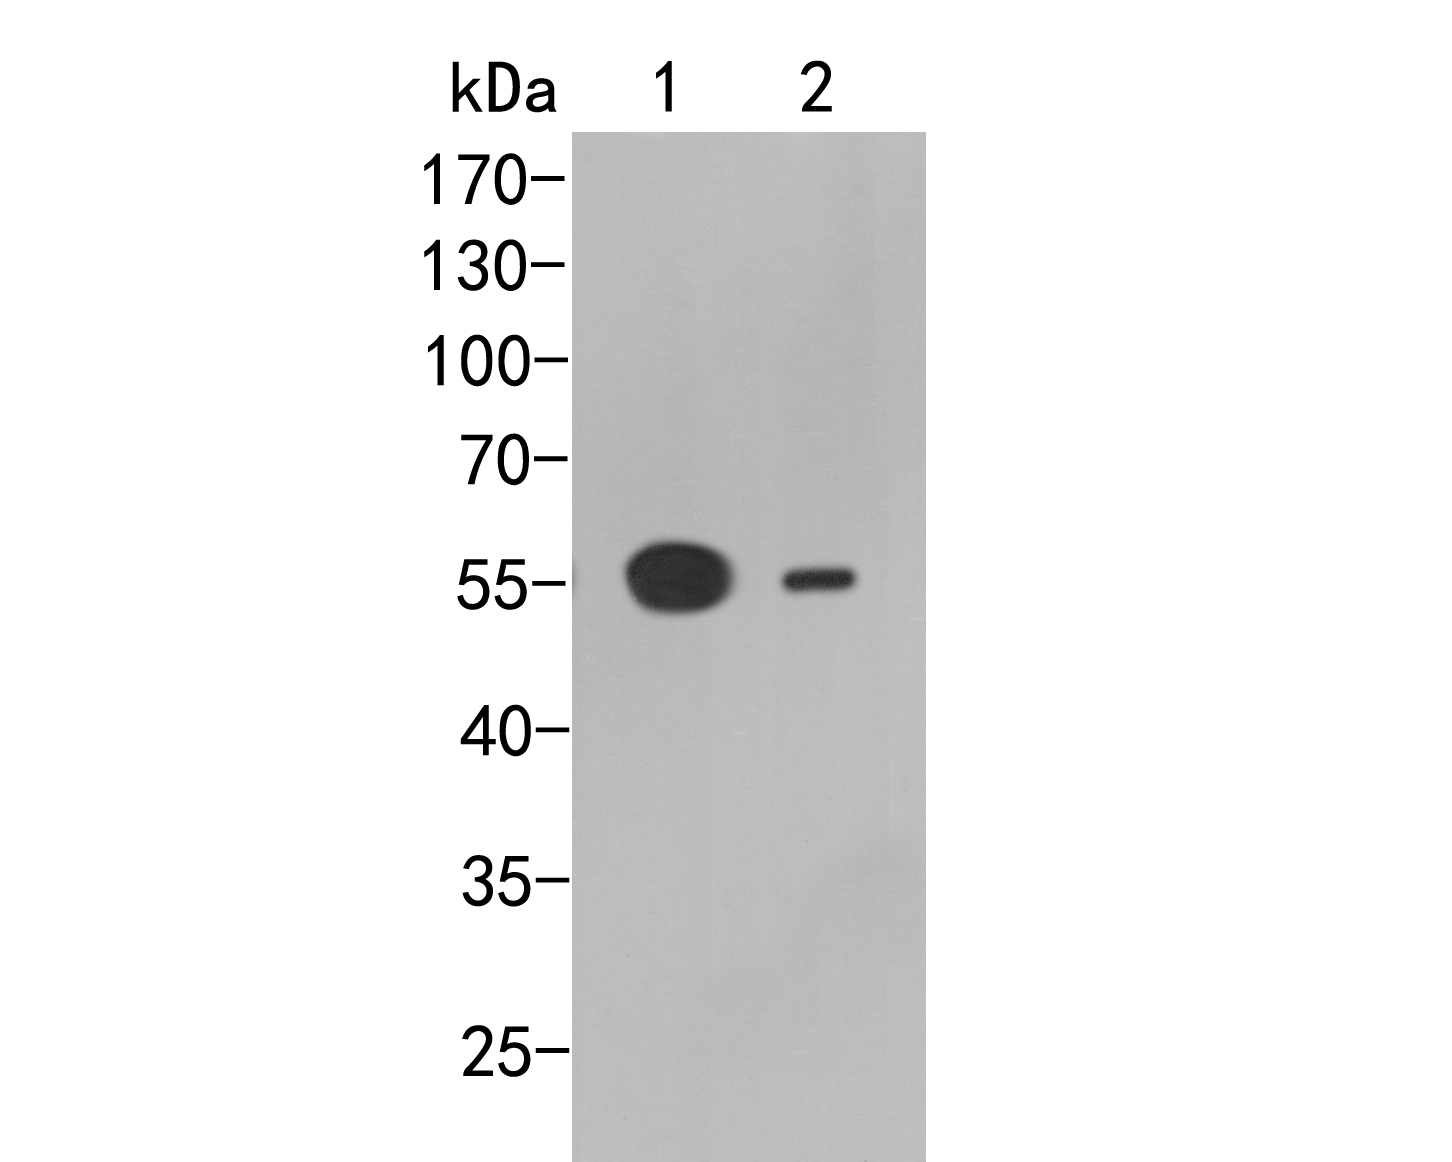 Western blot analysis of FCGRT on different lysates. Proteins were transferred to a PVDF membrane and blocked with 5% BSA in PBS for 1 hour at room temperature. The primary antibody (ER2001-44, 1/500) was used in 5% BSA at room temperature for 2 hours. Goat Anti-Rabbit IgG - HRP Secondary Antibody (HA1001) at 1:5,000 dilution was used for 1 hour at room temperature.<br /> Positive control: <br /> Lane 1: Human brain tissue lysate<br /> Lane 2: HepG2 cell lysate